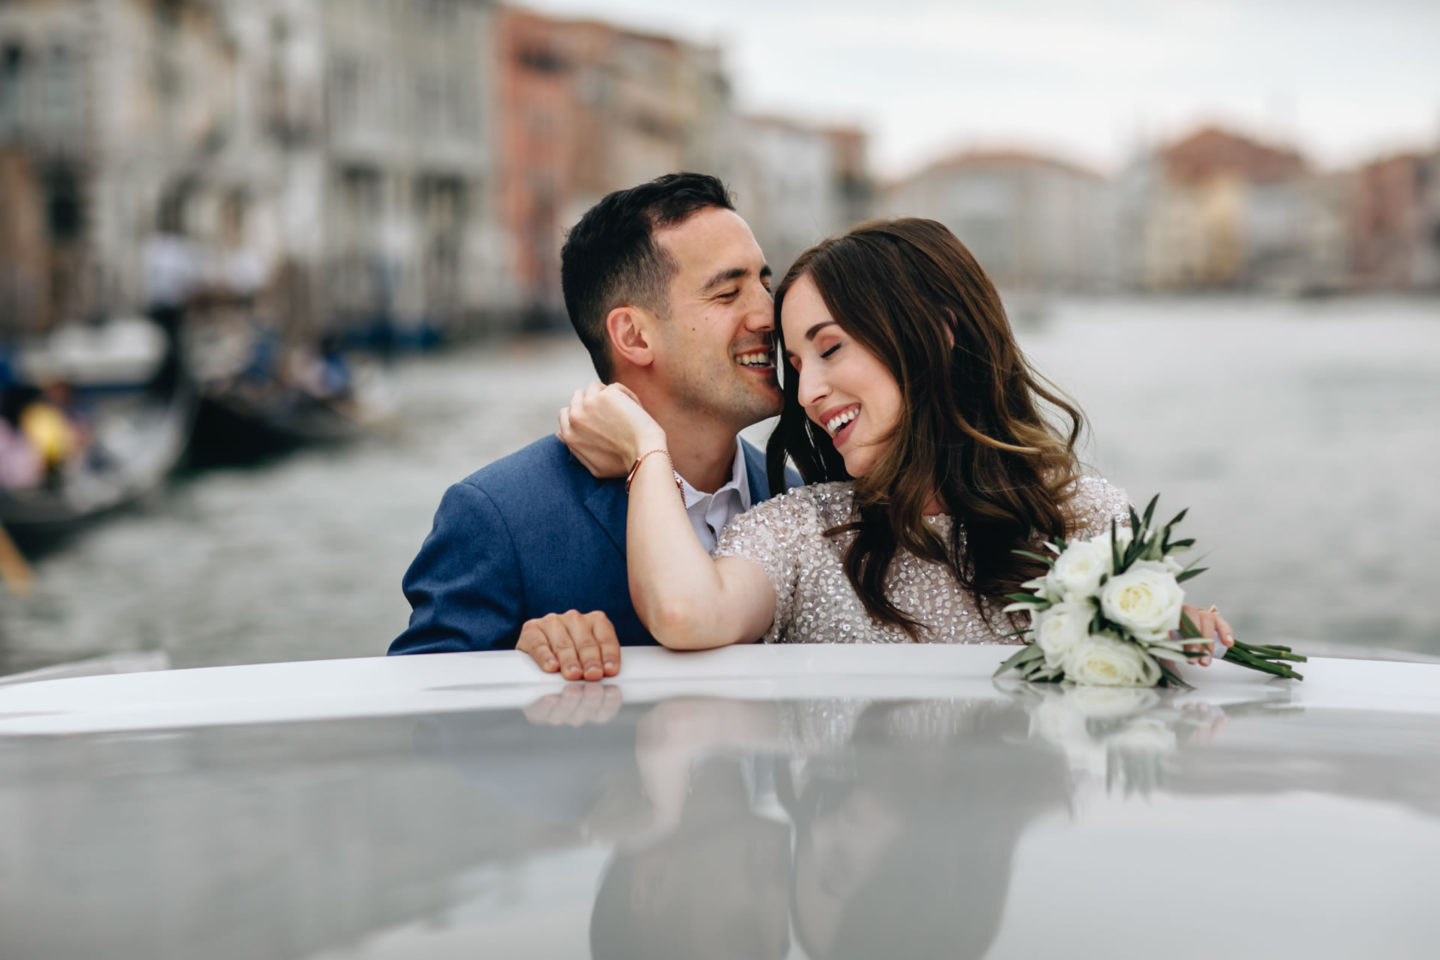 Romantic elopement in Venice :: Luxury wedding photography - 2